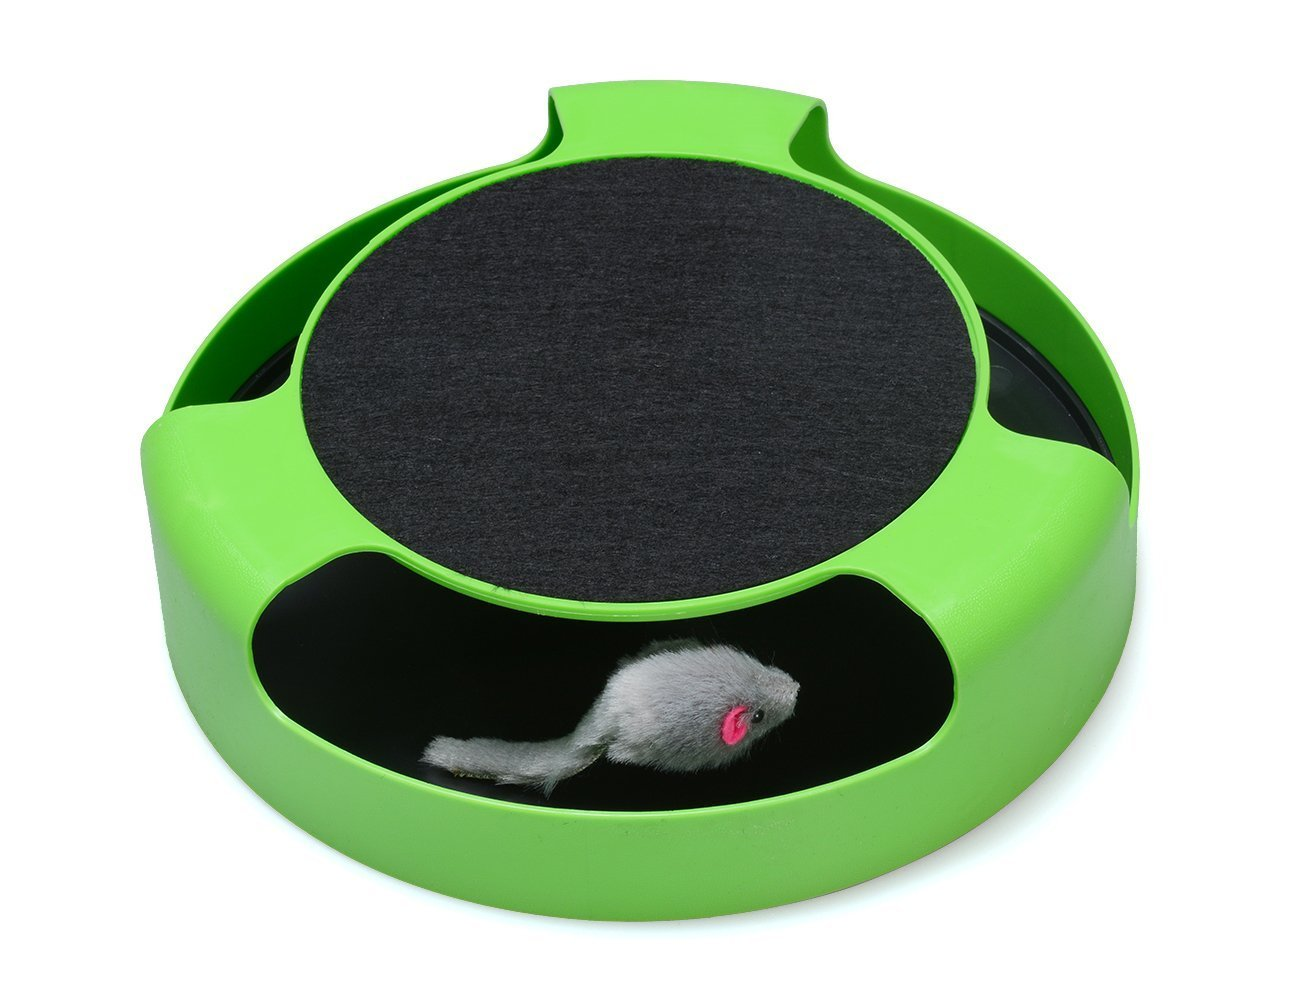 Cat Interactive Toys with a Running Mice and a Scratching Pad, Catch The Mouse, Cat Scratcher Catnip Toy, Green Naisidier